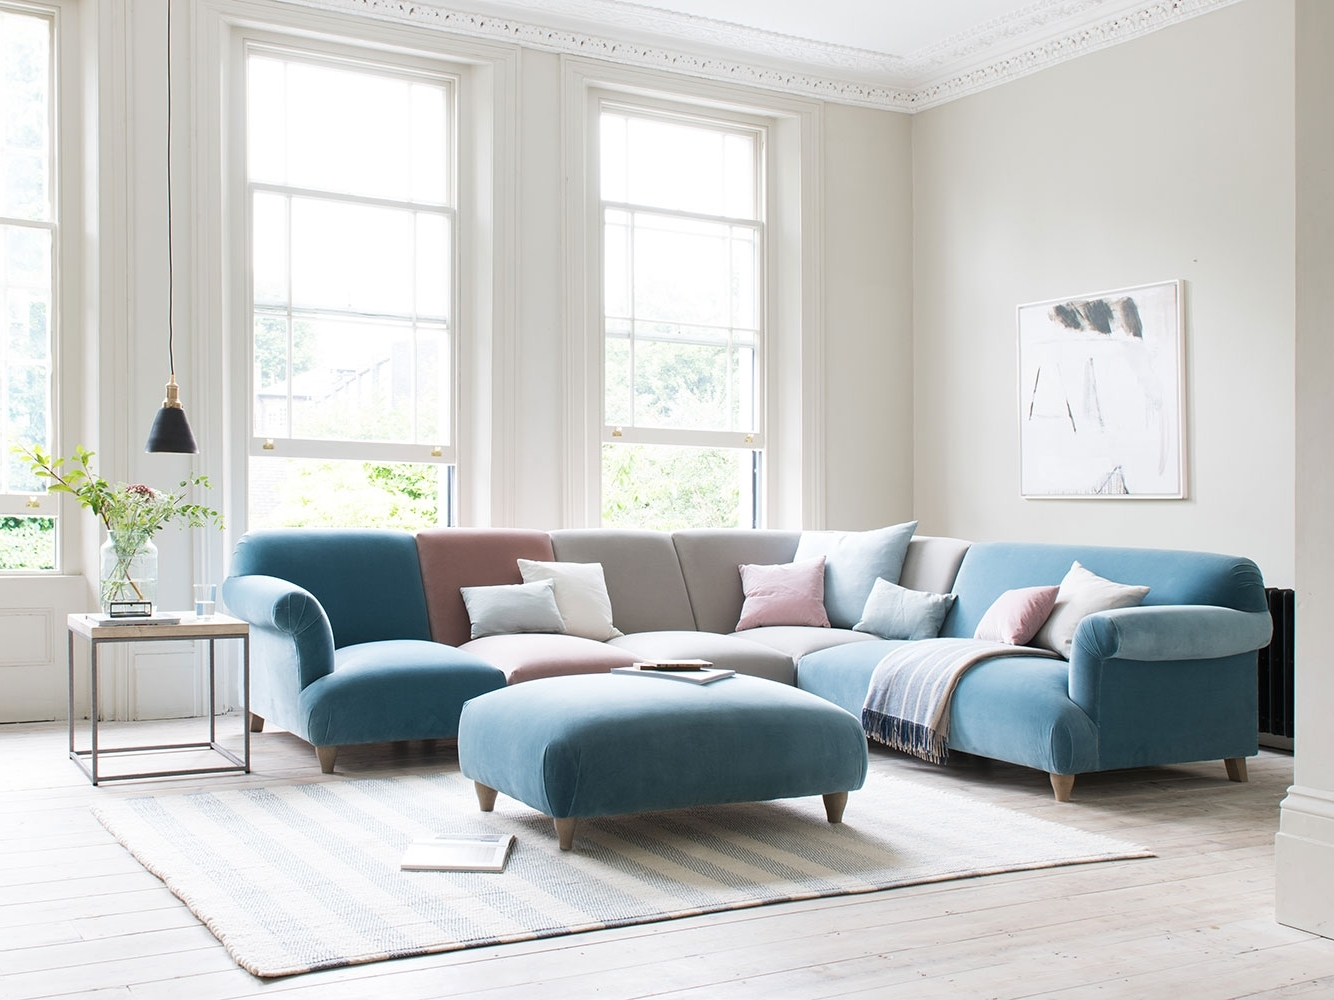 2019 Modular Corner Sofas Intended For Soufflé Modular Sofa (View 1 of 20)